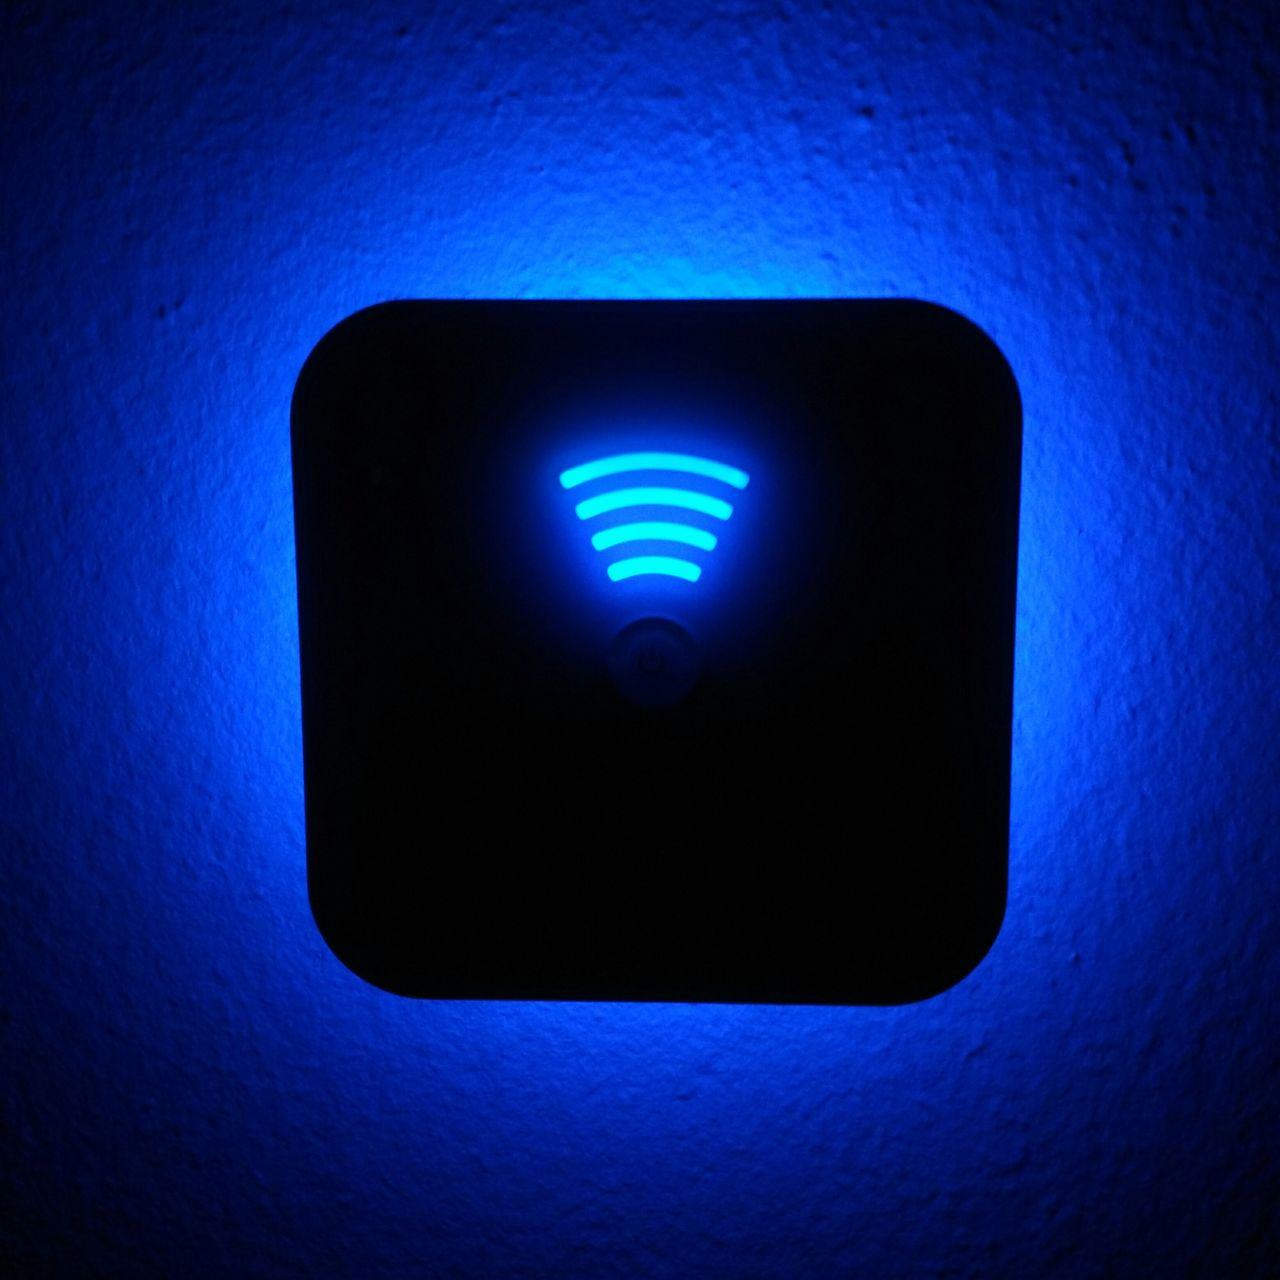 Wlan Blau Dinge Technik Dinge Technik  Internet